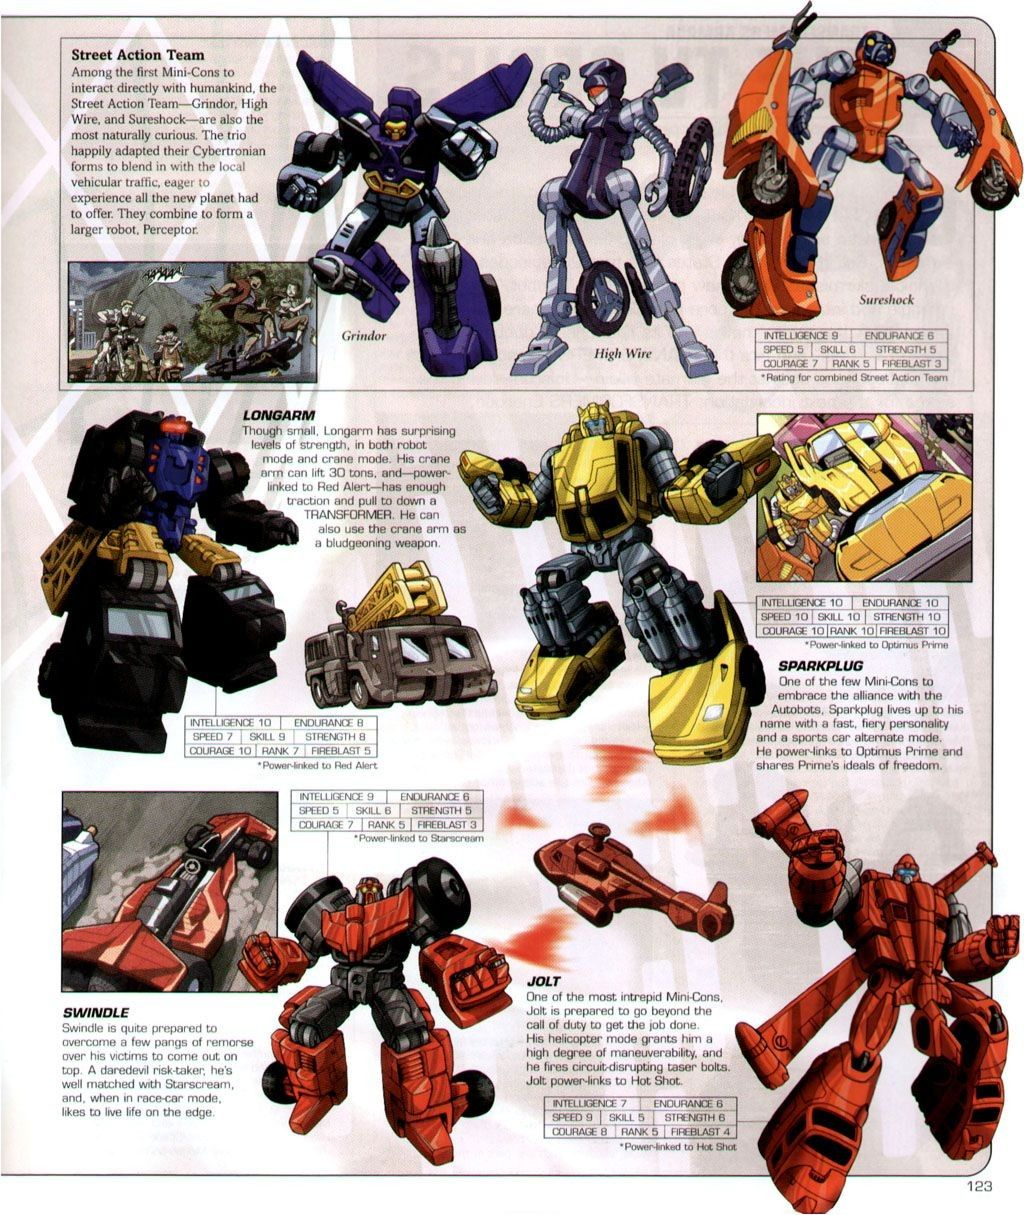 Pin By Steven Cisneros On Robots And Mechas Of America And Japan Transformers Transformers Armada Transformers Cybertron